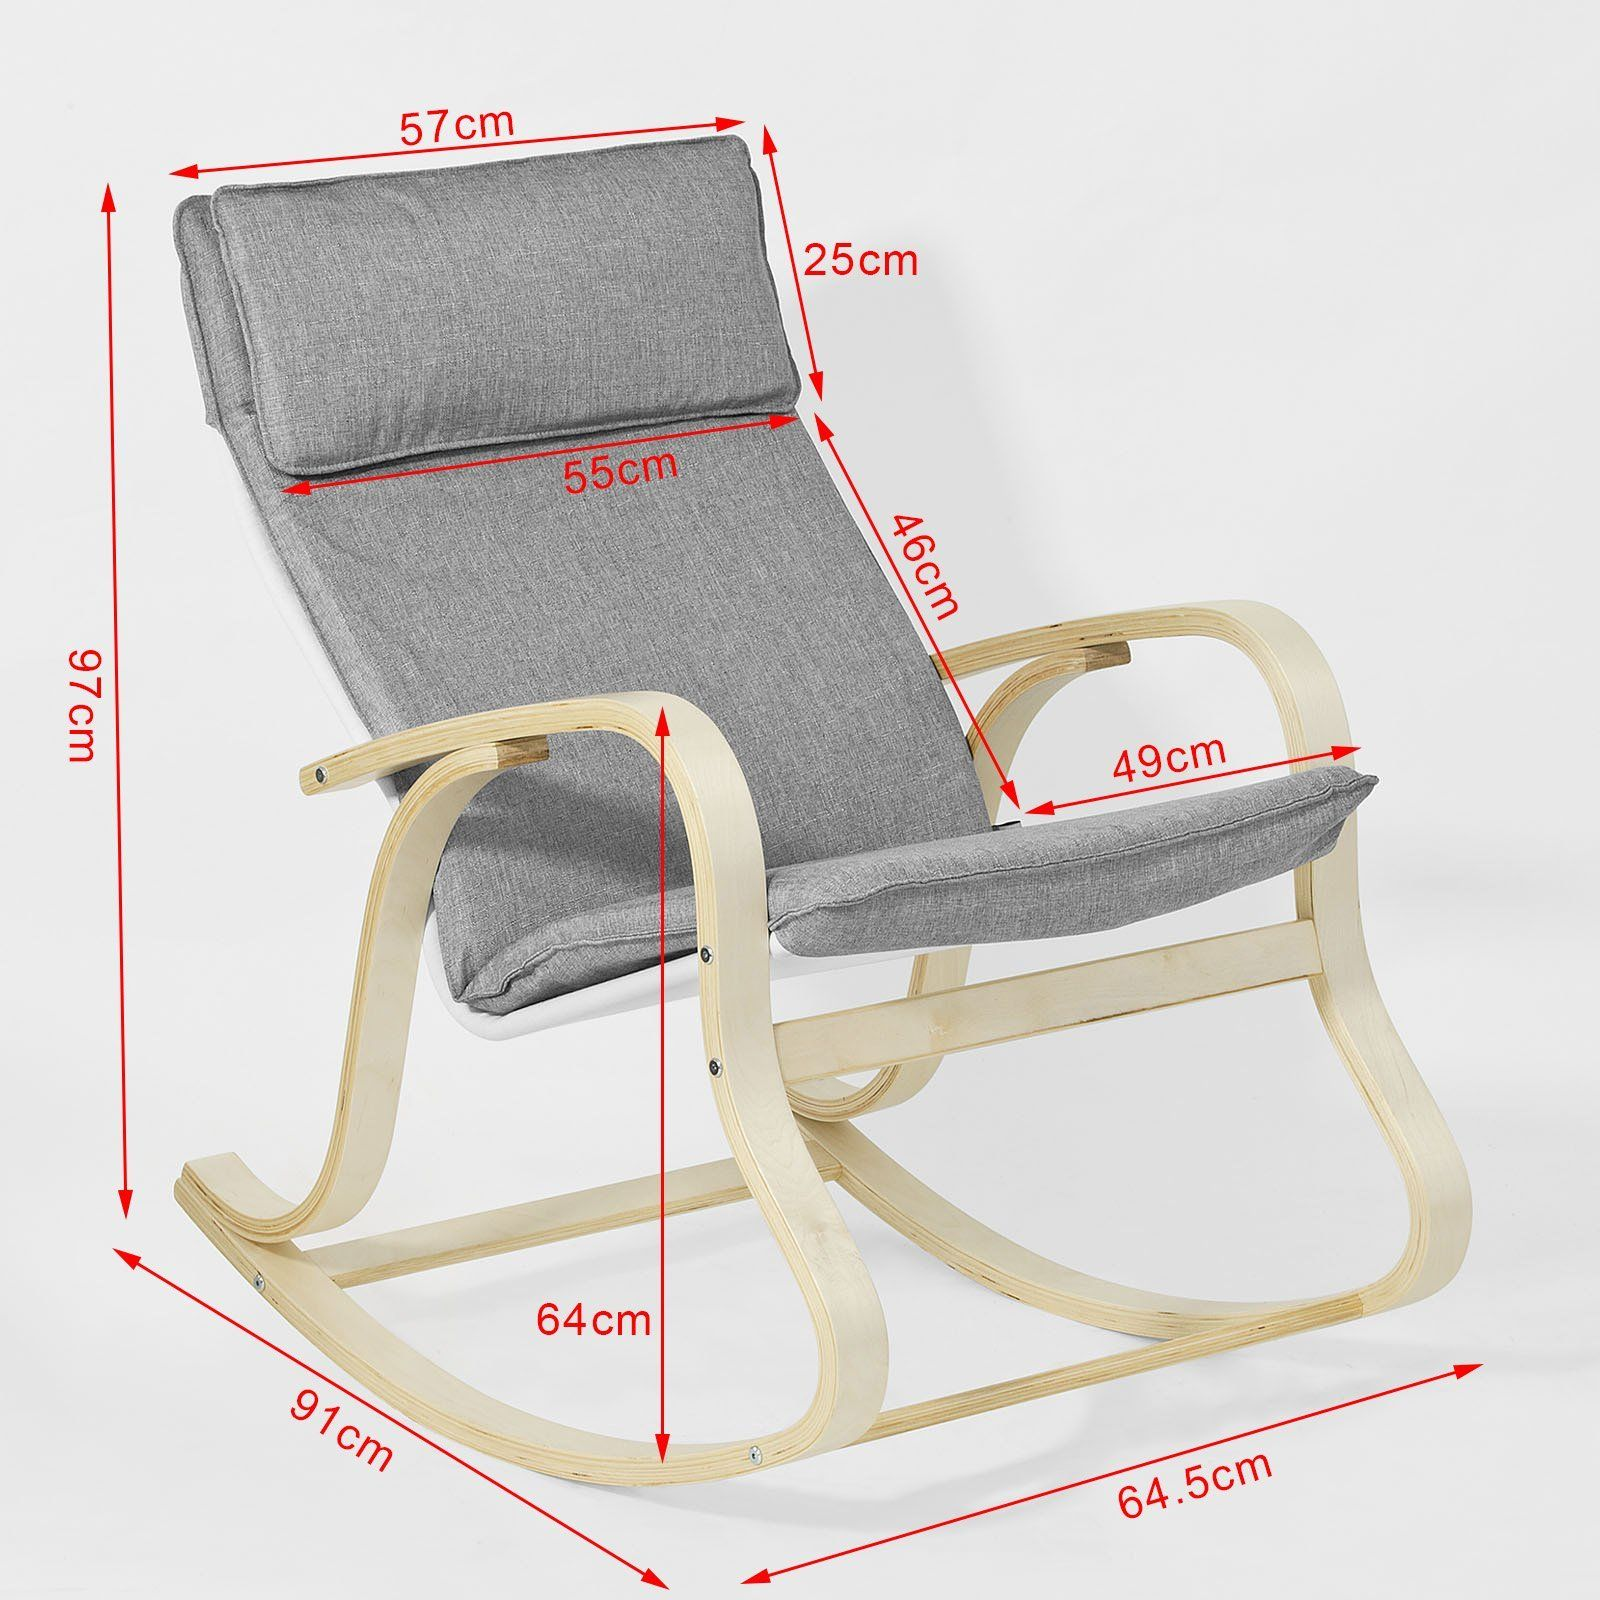 Haotian Fst15dg Comfortable Relax Rocking Chair Lounge Chair Relax Chair With Cotton Fabric Cushion More Rocking Chair Relaxing Chair Furniture Design Chair